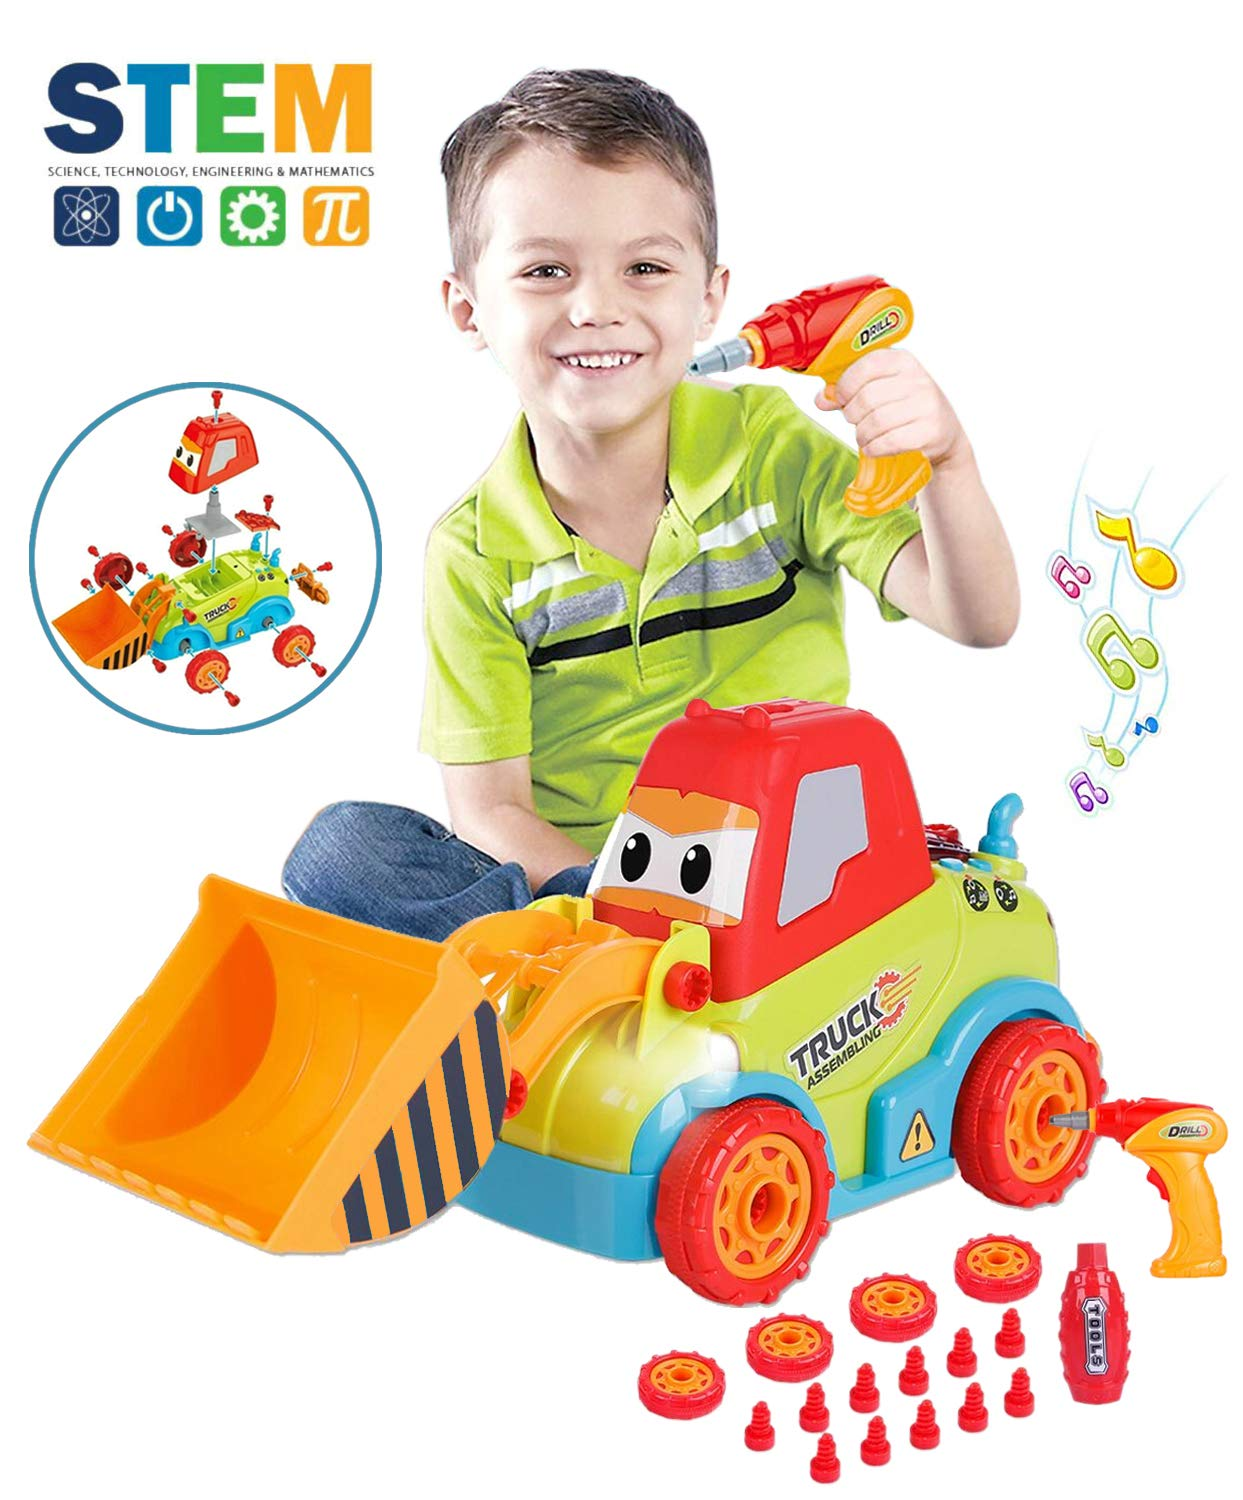 LUKAT Take Apart Toys Truck Toddler DIY Assembly Construction Bulldozer with Drill Tool/ Music/ Lights, Kids STEM Toy Car for 3-4-5 Years Old Boys Preschool Learning